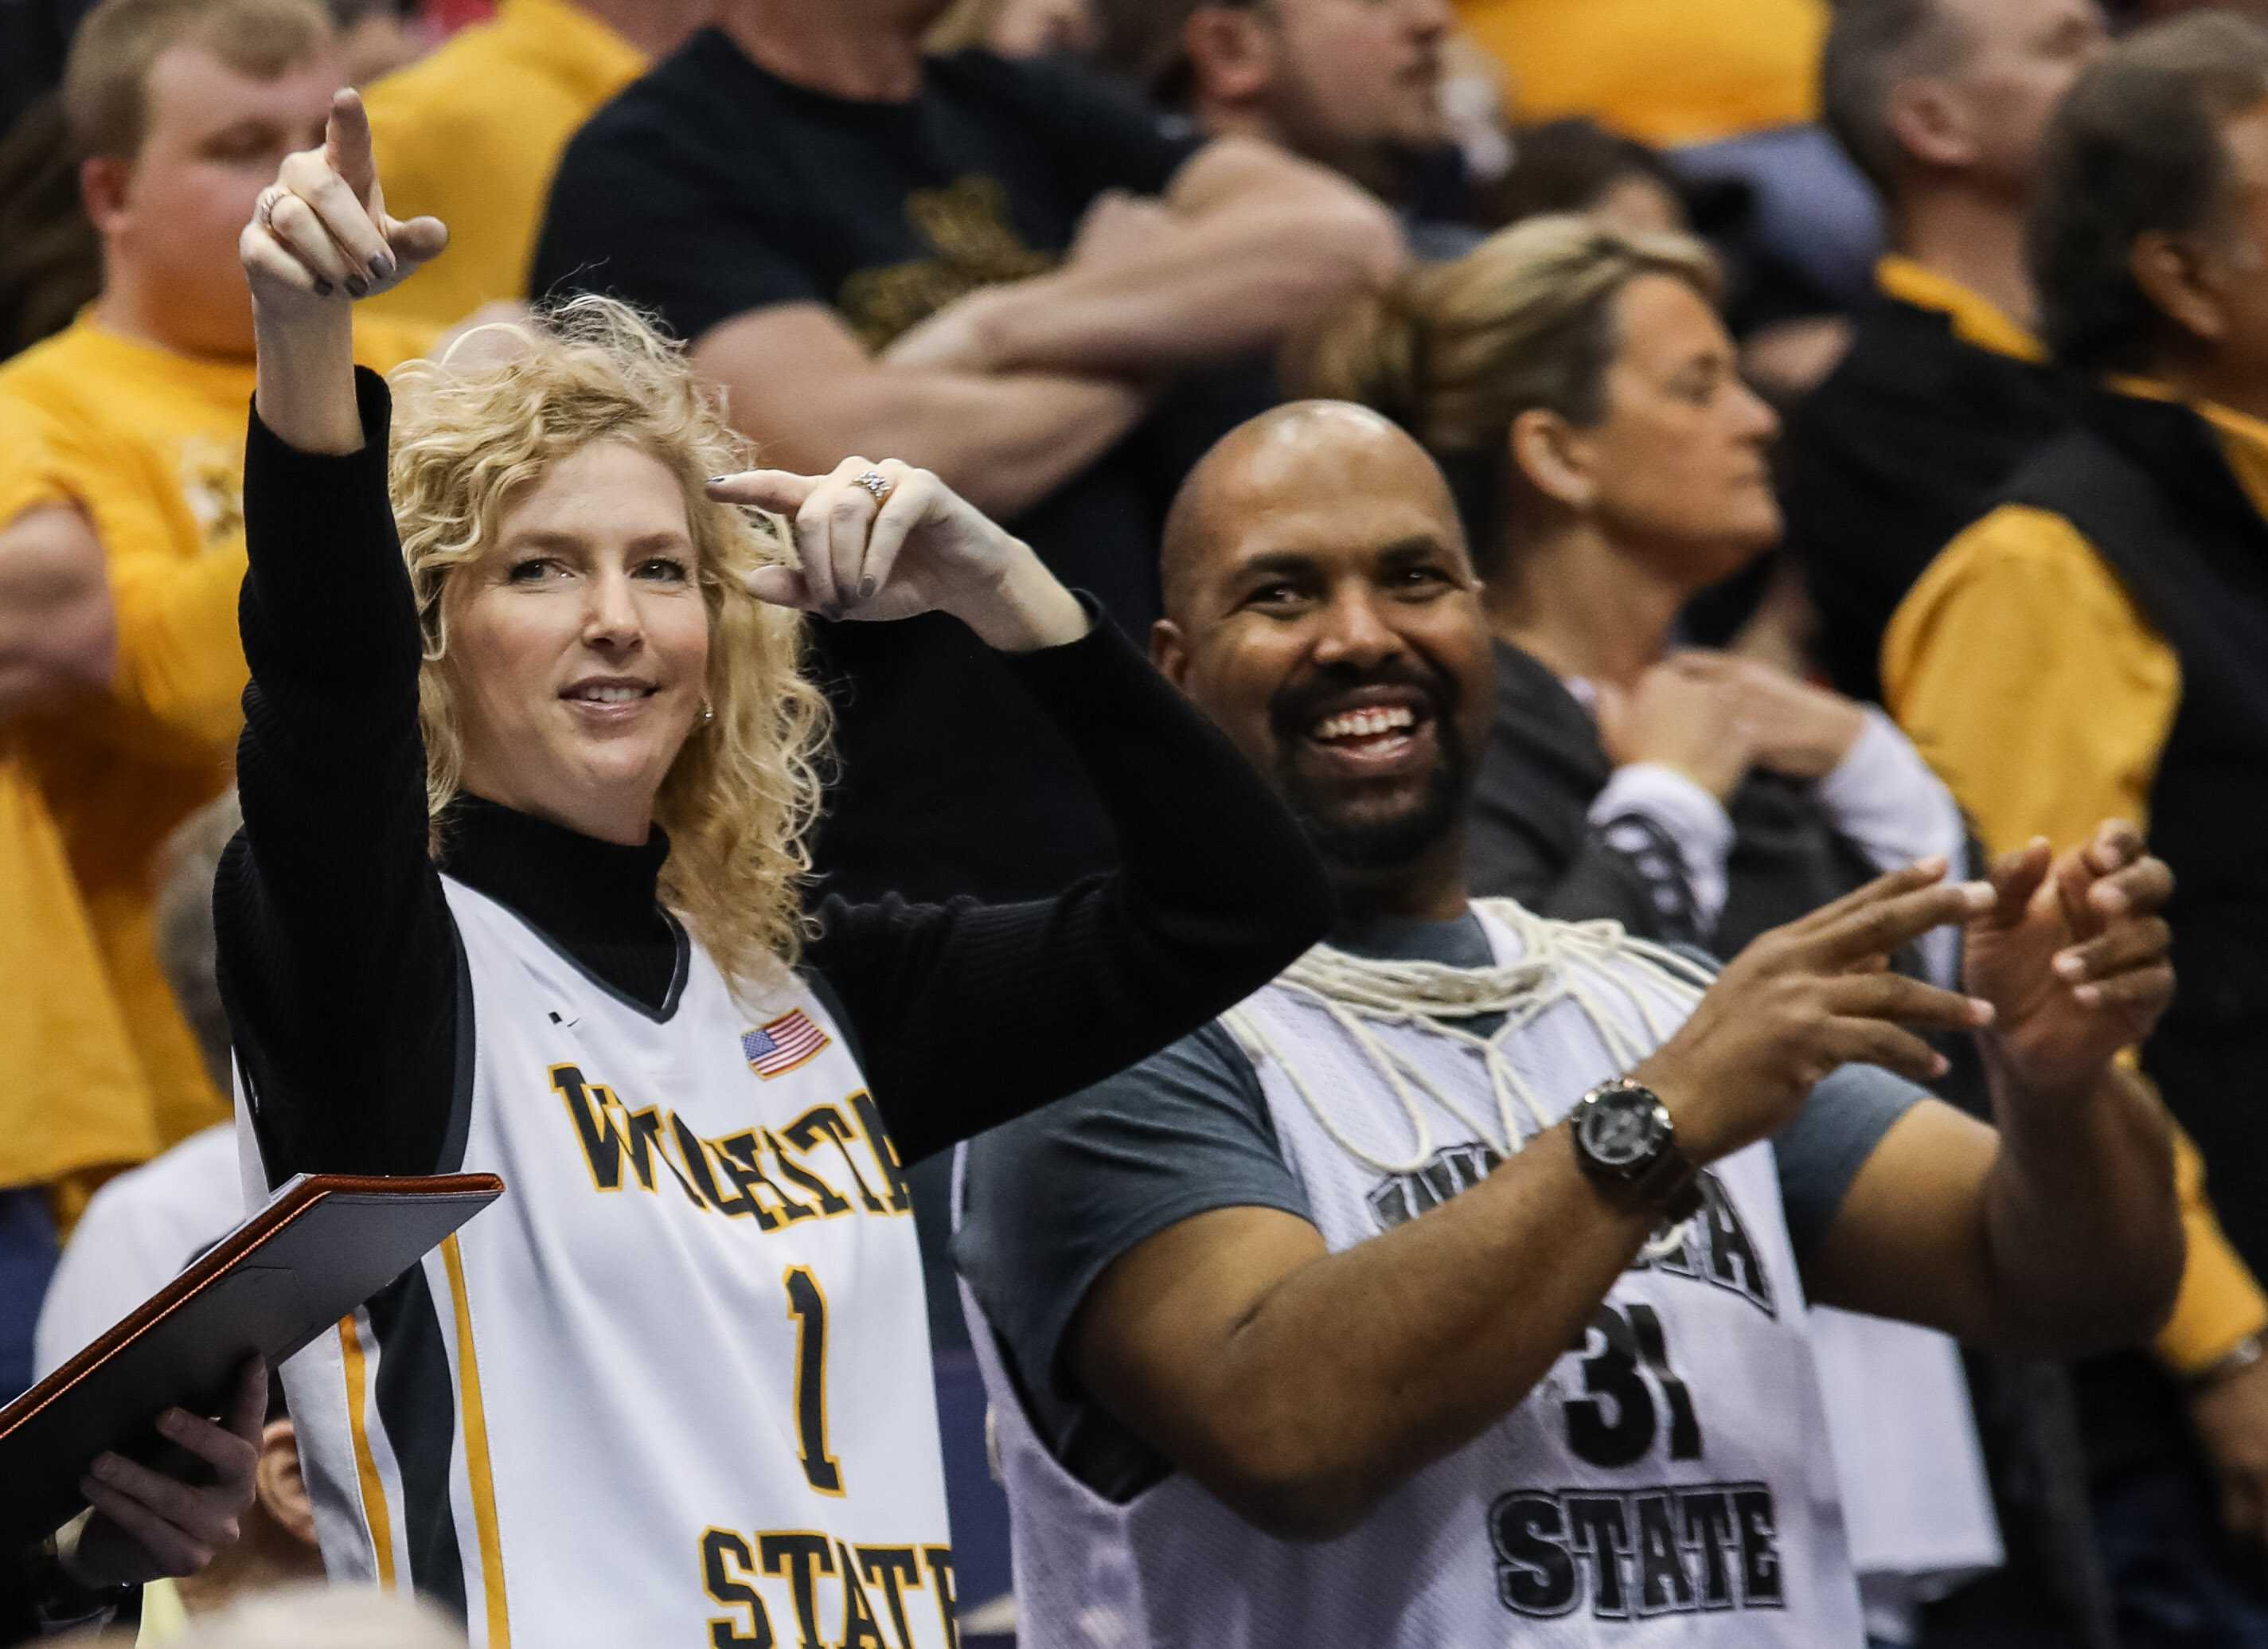 Head coach Gregg Marshall's wife Lynn points to the cheerleaders and pep  band during a cheer after the Shockers 82-56 victory over Bradley.